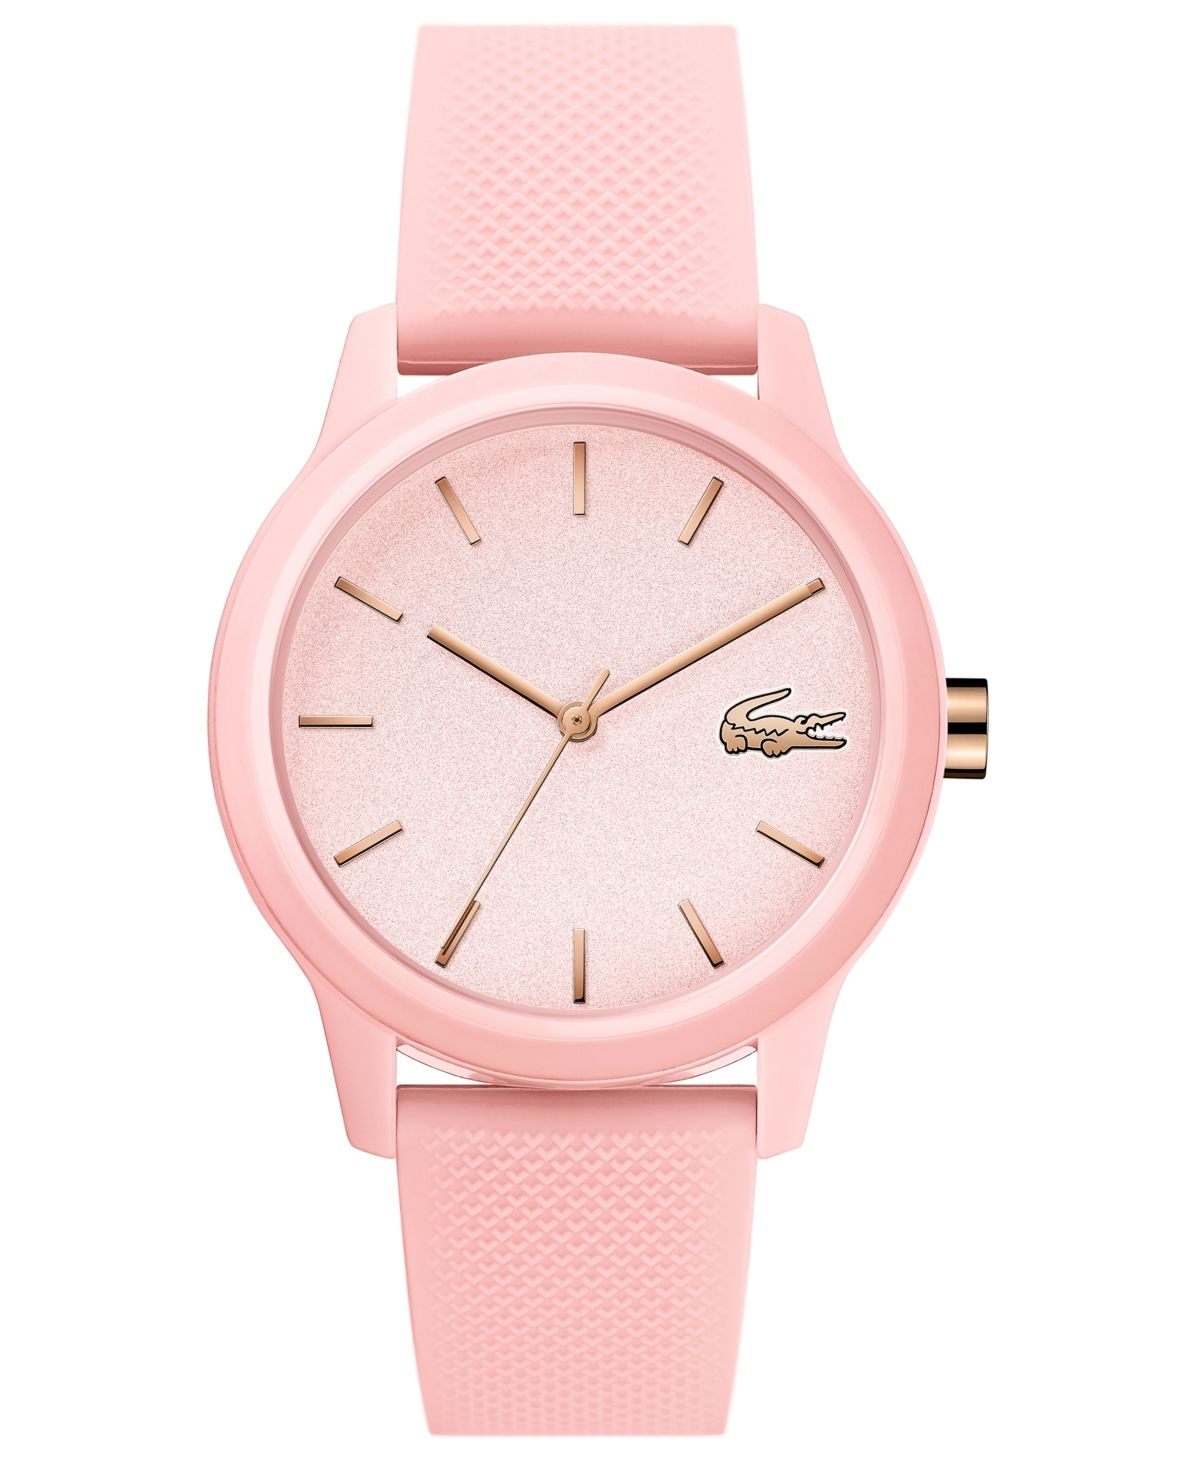 Photo of Lacoste Women's 12.12 Pink Rubber Strap Watch 36mm & Reviews – All Fine Jewelry – Jewelry & Watches – Macy's